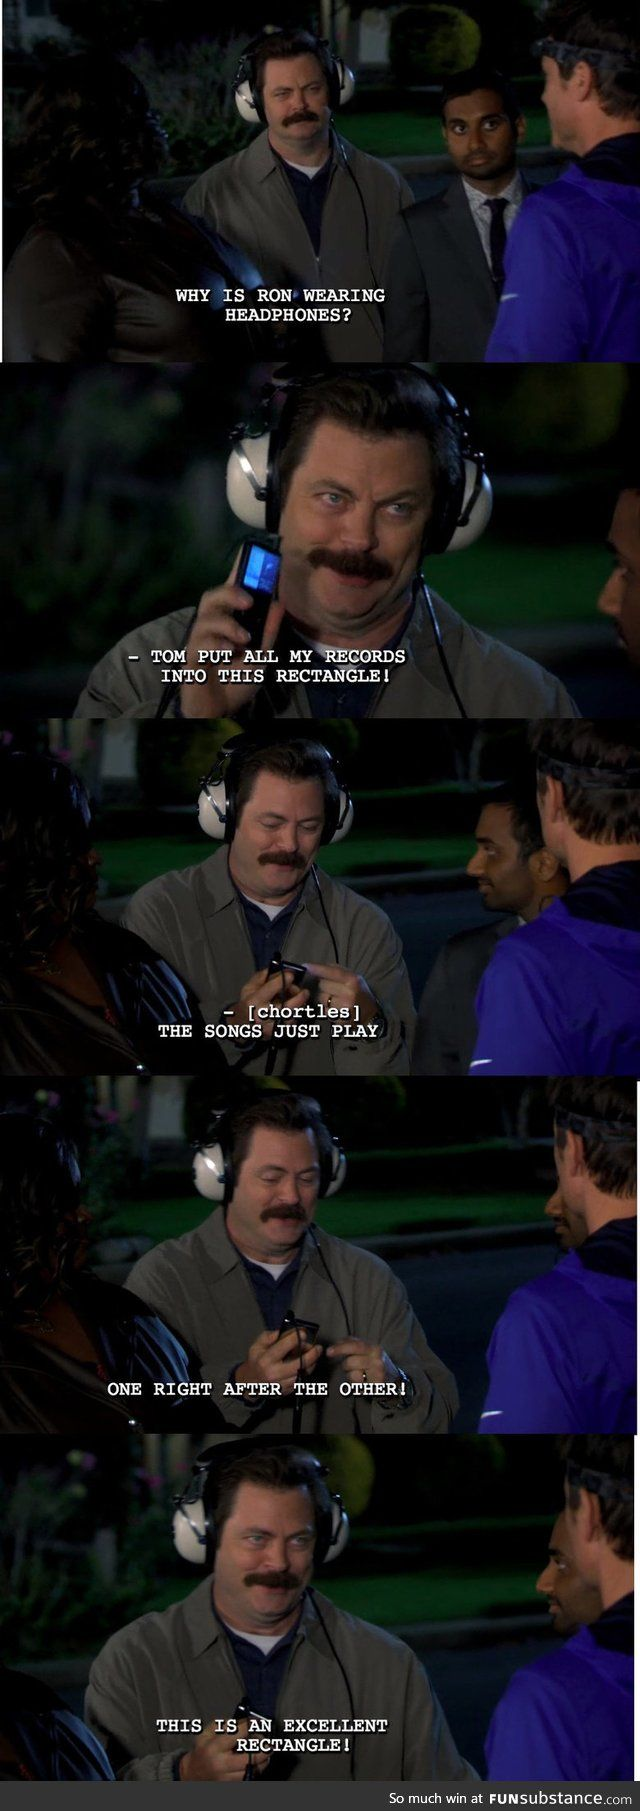 <3 My second favorite Ron Swanson moment. Second only to stabbing Jean-Ralphio in the hand with a shrimp skewer.